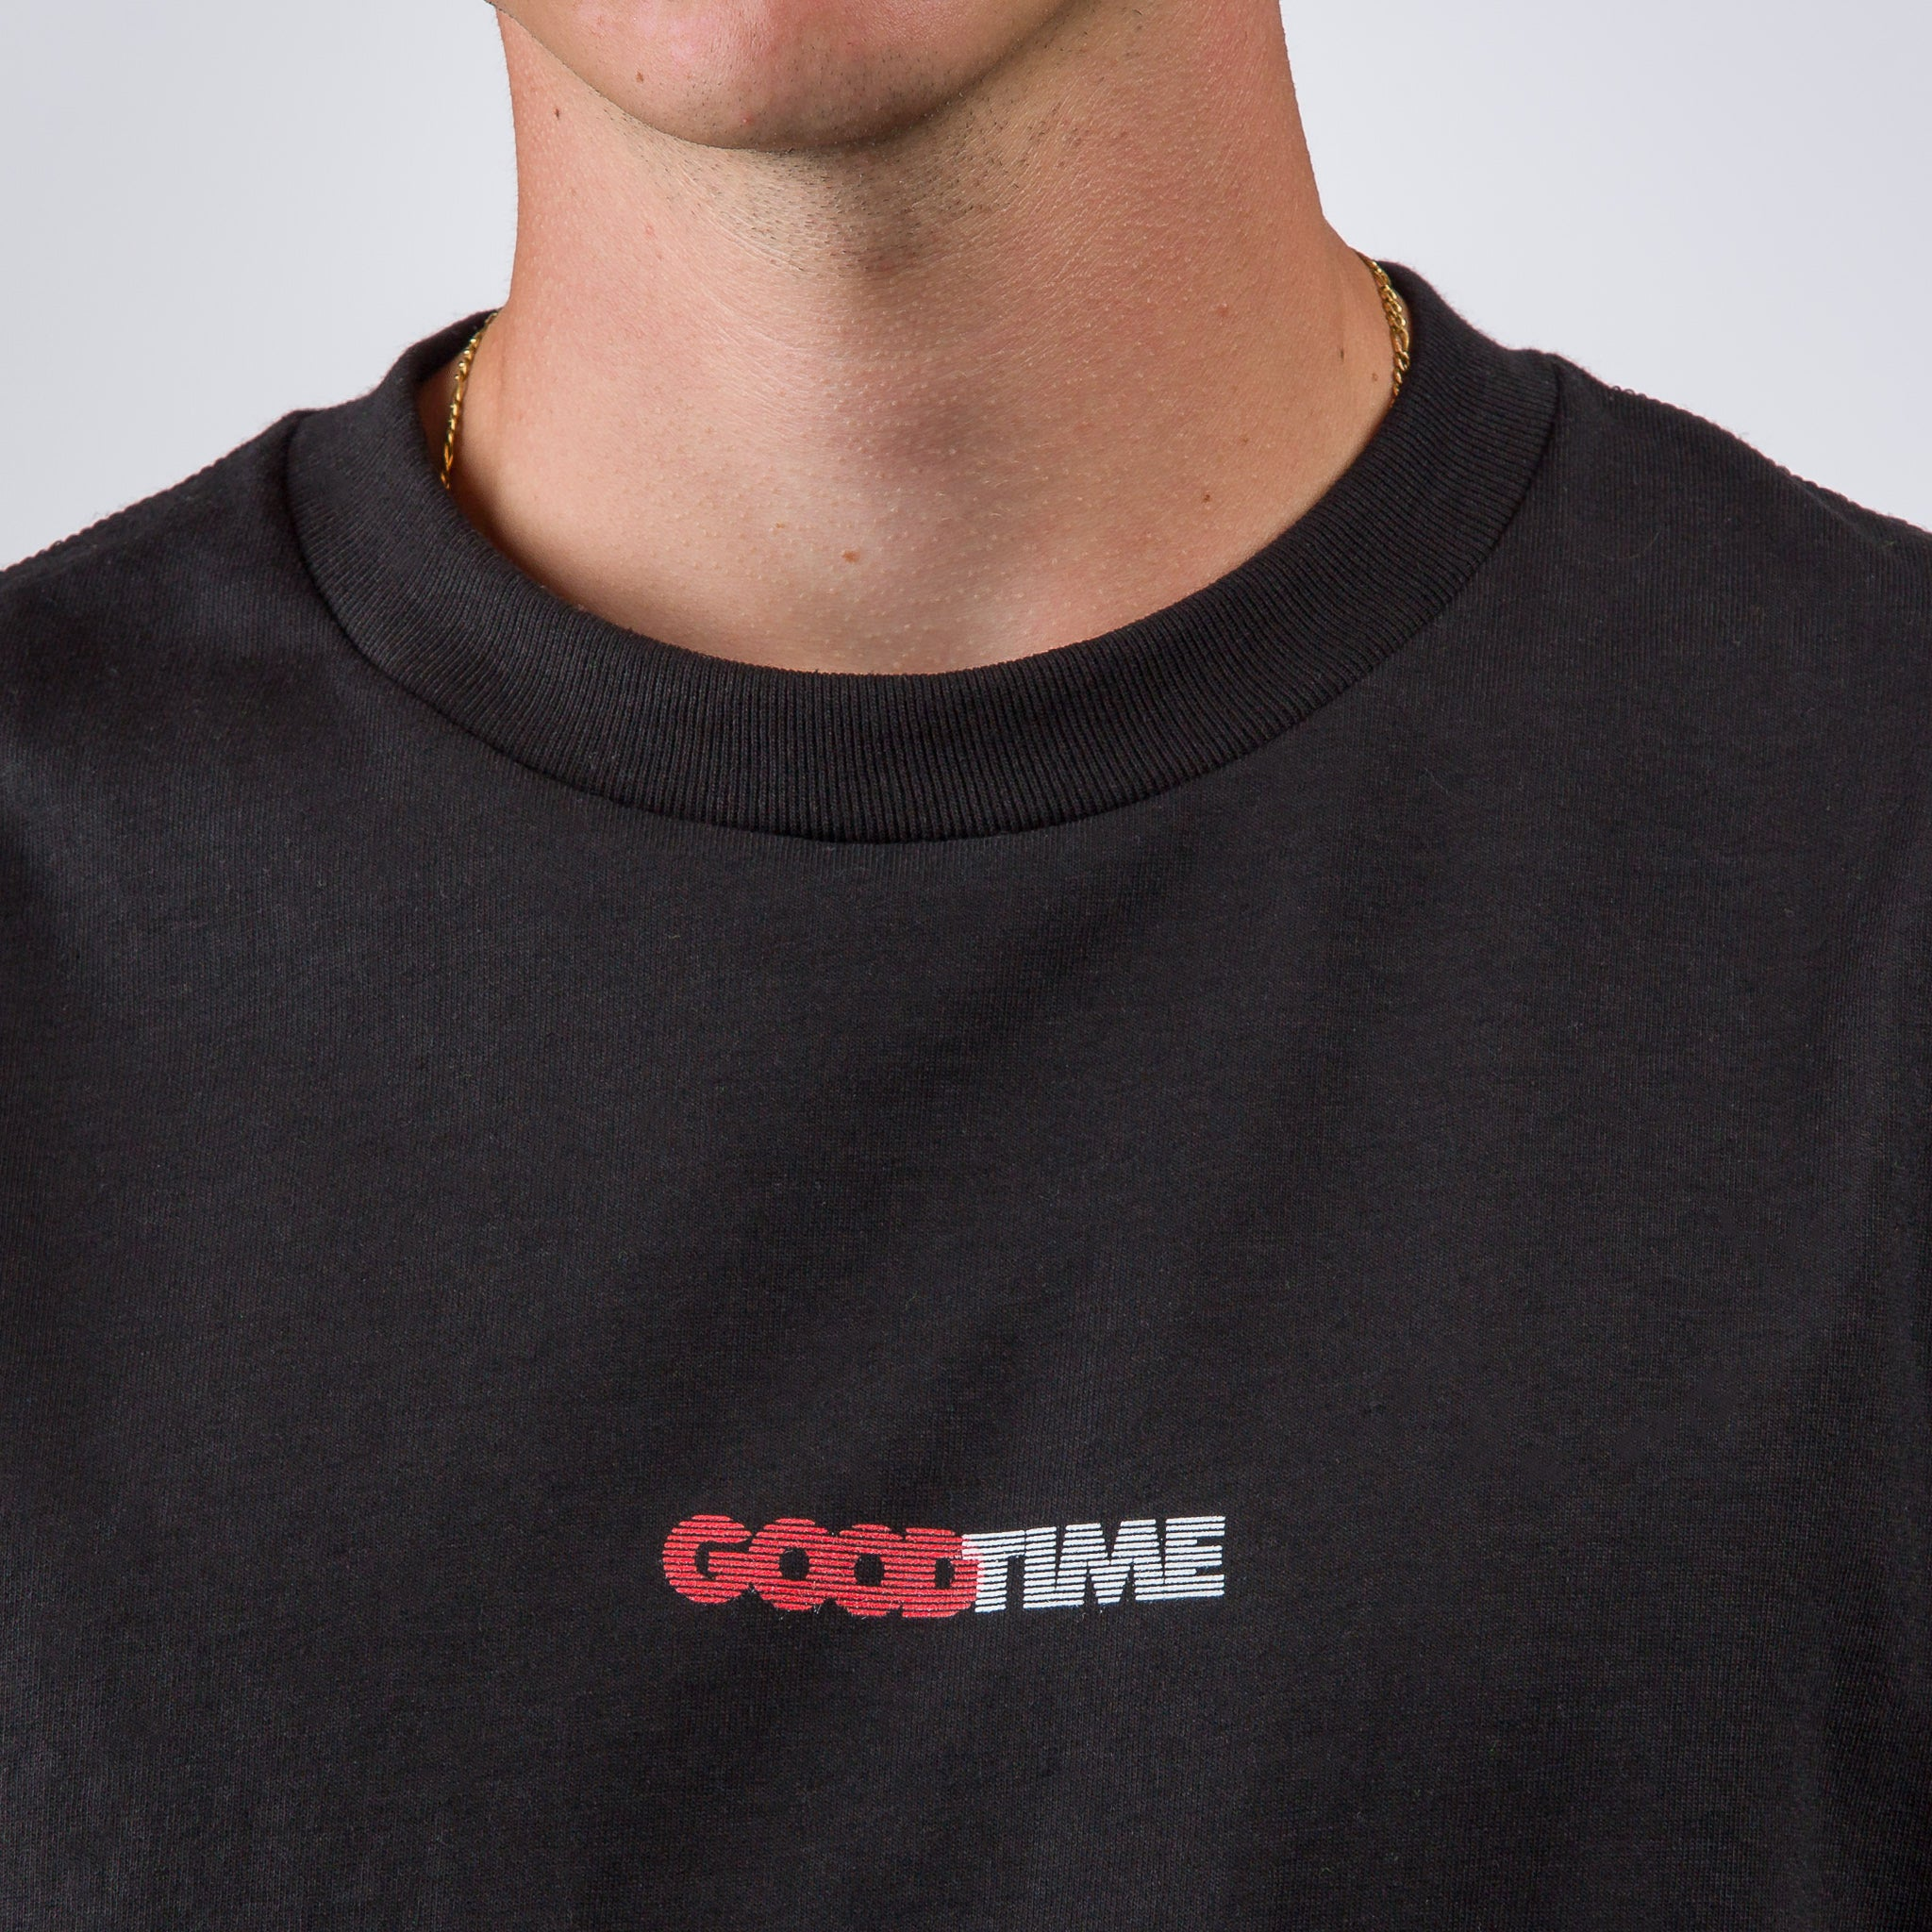 Good Time Logo T-Shirt in Black